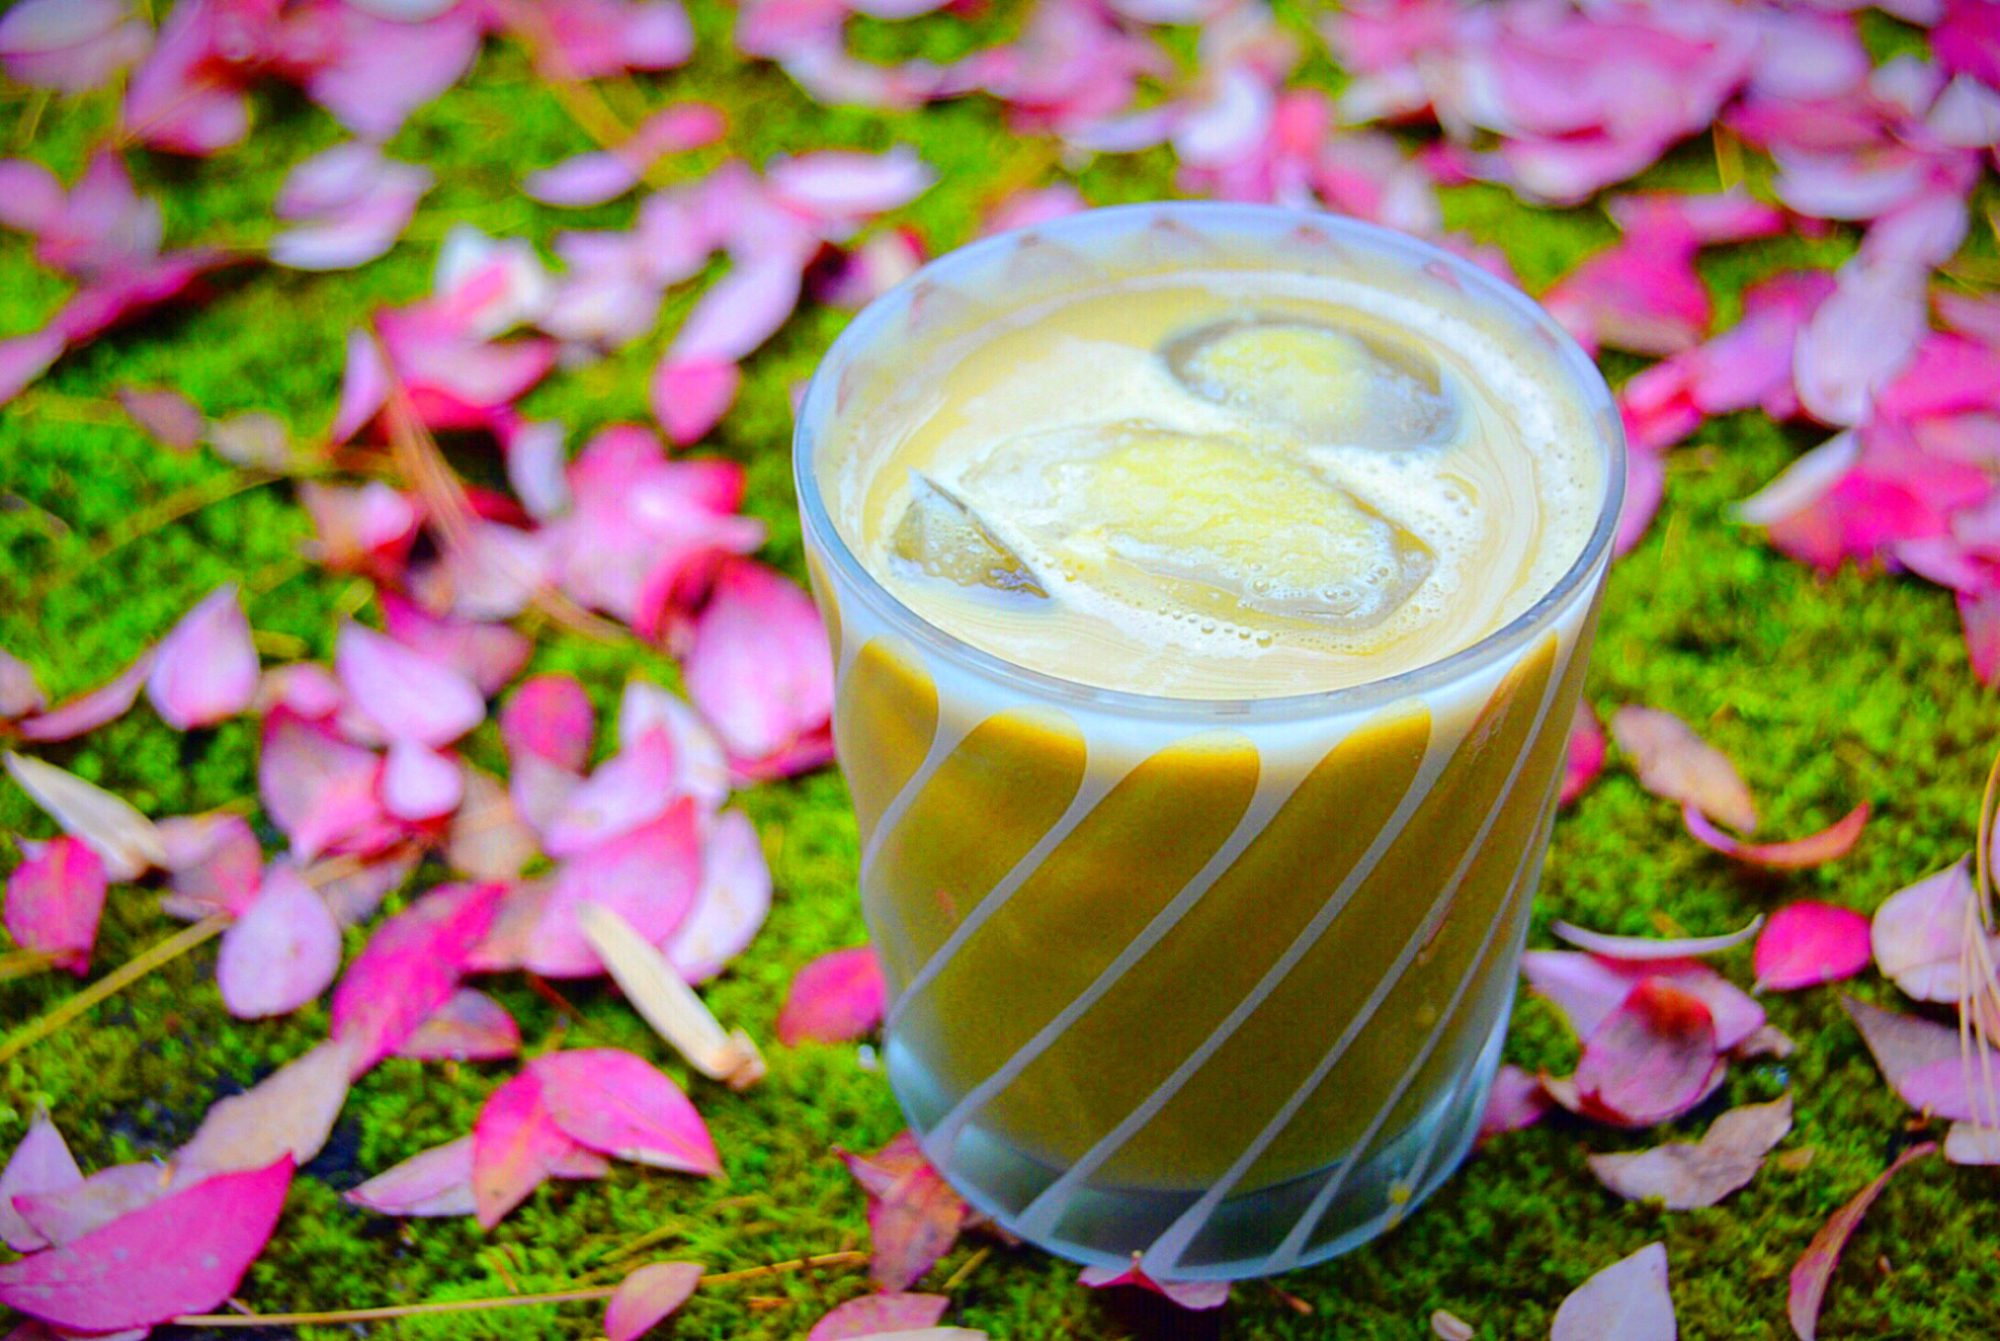 dulce de leche latte on a bed or pink leaves on moss